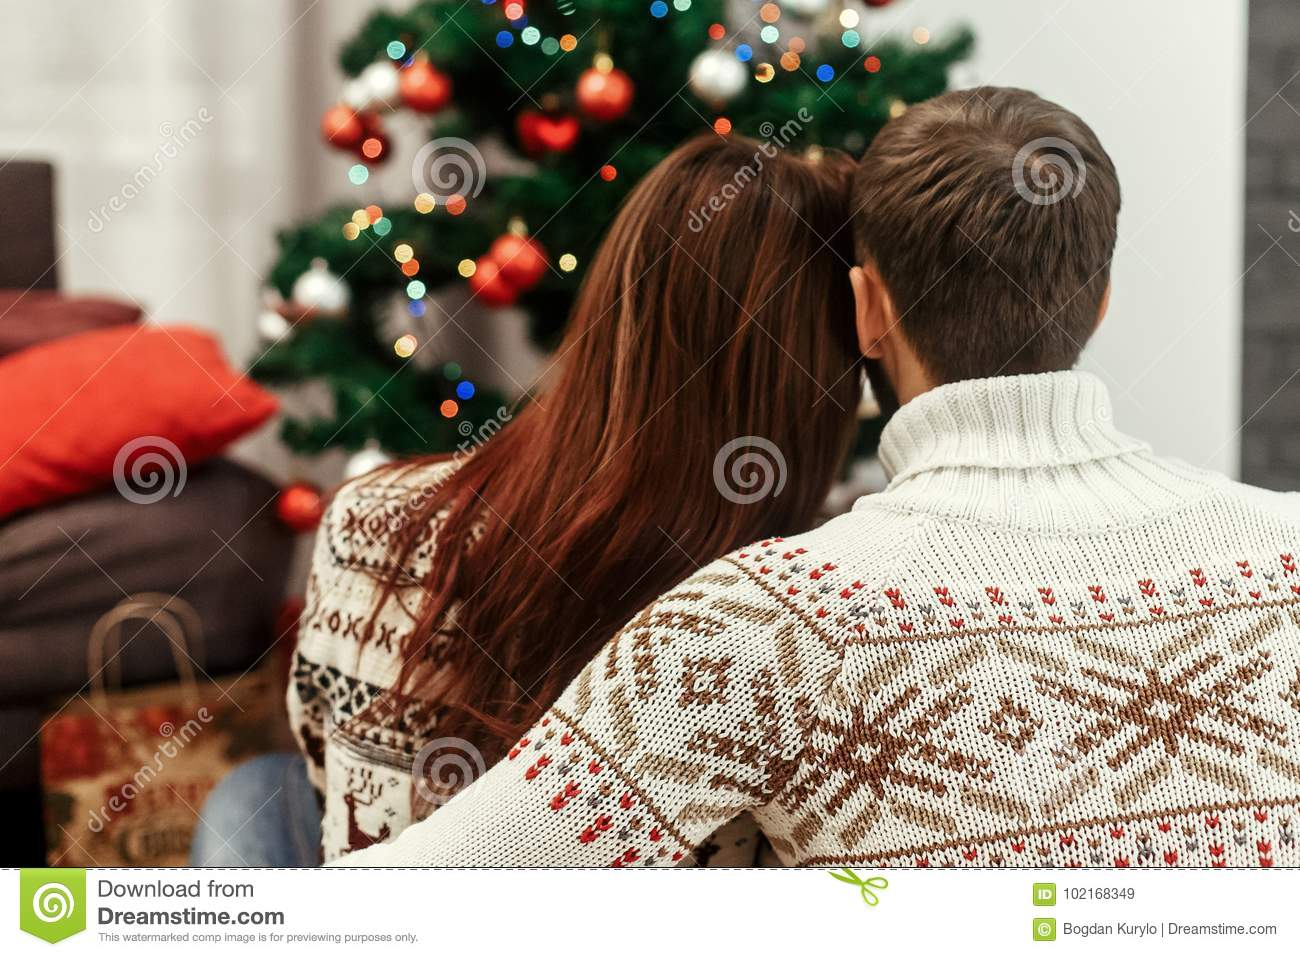 Romantic family couple in fashionable white sweaters hugging while looking at decorated christmas tree, greeting card concept wit